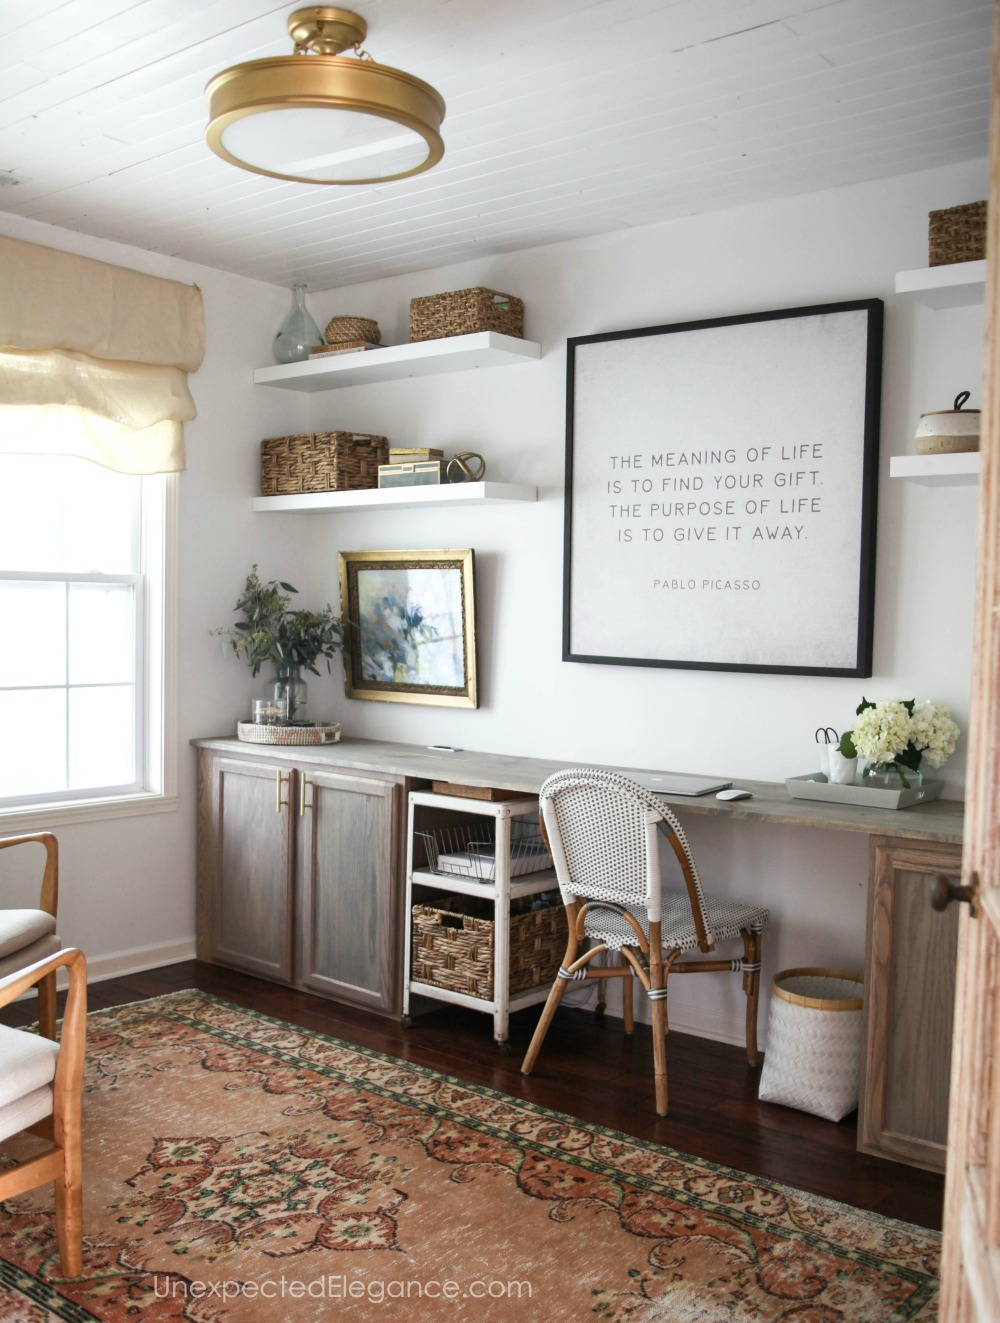 We all want our home to look amazing and wouldn't it be awesome if we could do it without spending a ton of money??  Check out these tips for creating a high-end look on a budget right now!!